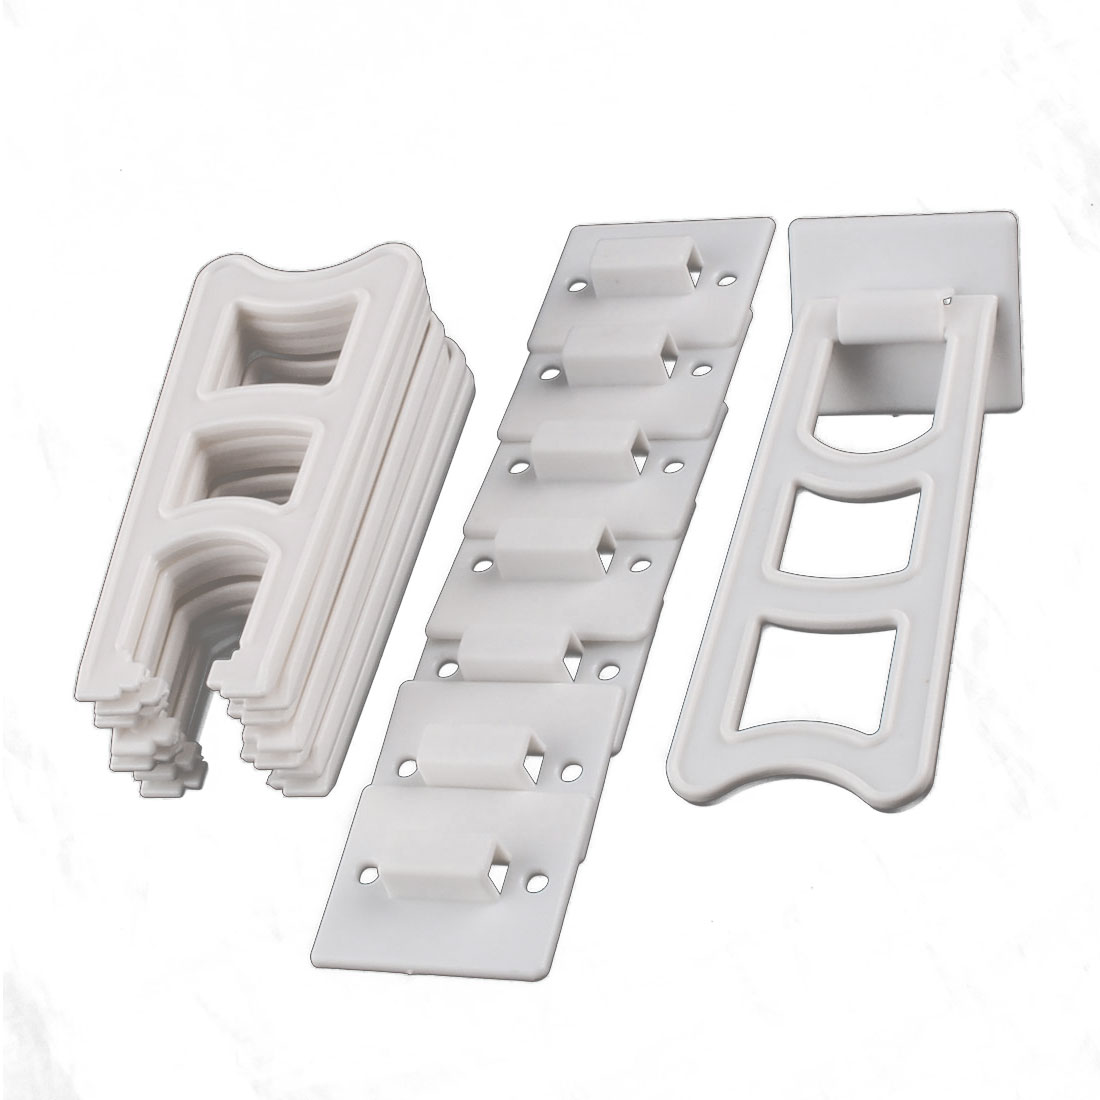 Home Plastic Trapezoid Shaped Display Holder Photo Frame Stands White 8 Sets